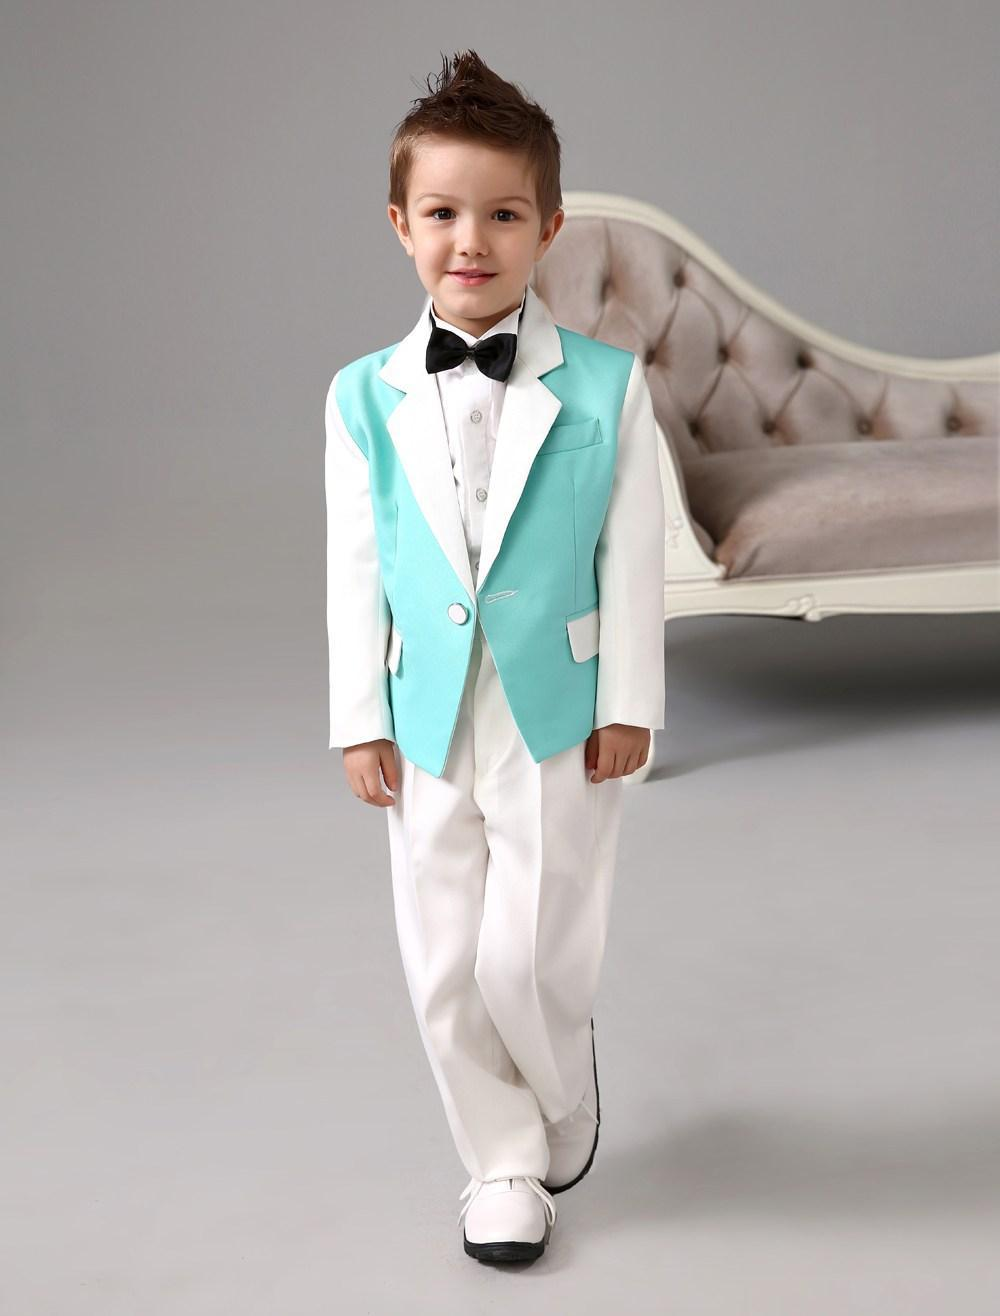 Four Pieces Luxurious green and white Ring Bearer Suits cool Boys Tuxedo With Black Bow Tie kids formal dress boys suits(China (Mainland))